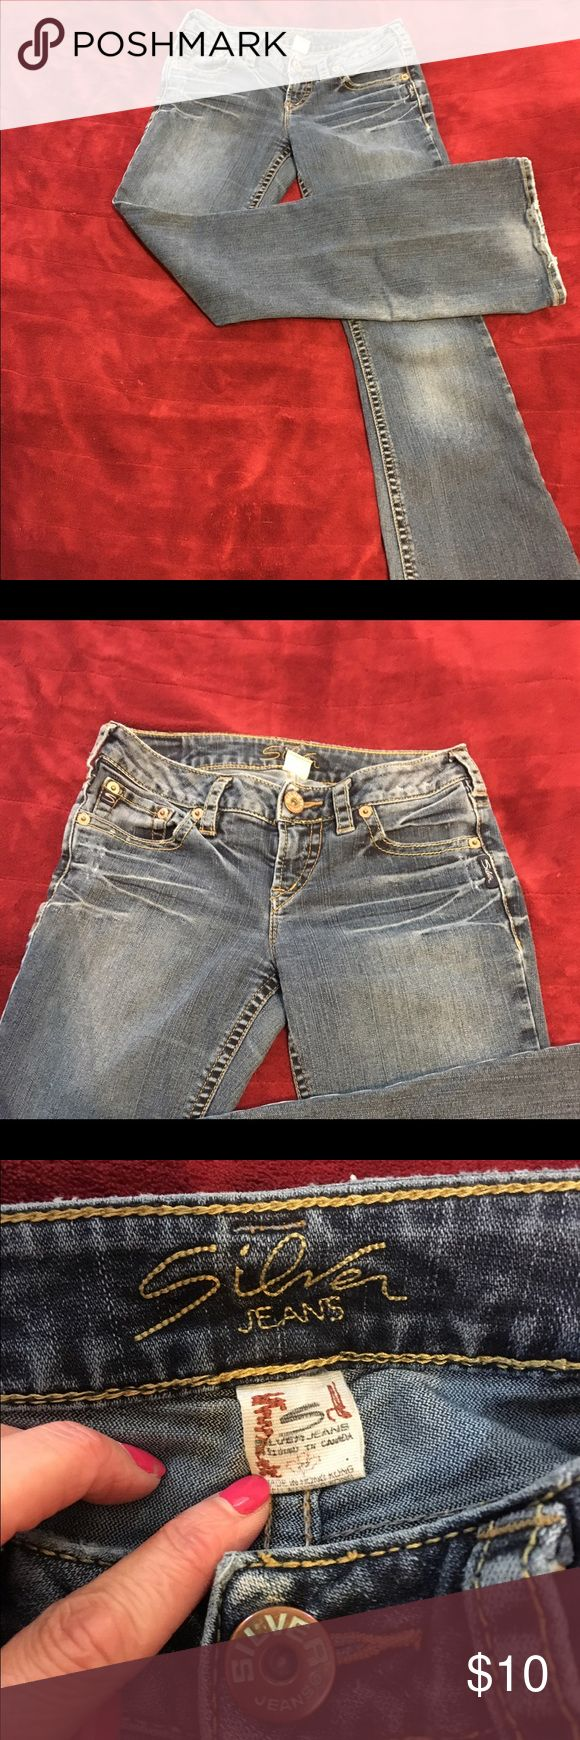 Women's Silver Jeans 👖..Size 27/31 Cute jeans 👖. However, the silver jeans logo on the back, top right is coming loose and there is fraying beginning on the crotch area. So, if your someone that is good with a sewing machine or patch work, these might be just what you've been looking for! Silver Jeans Jeans Flare & Wide Leg